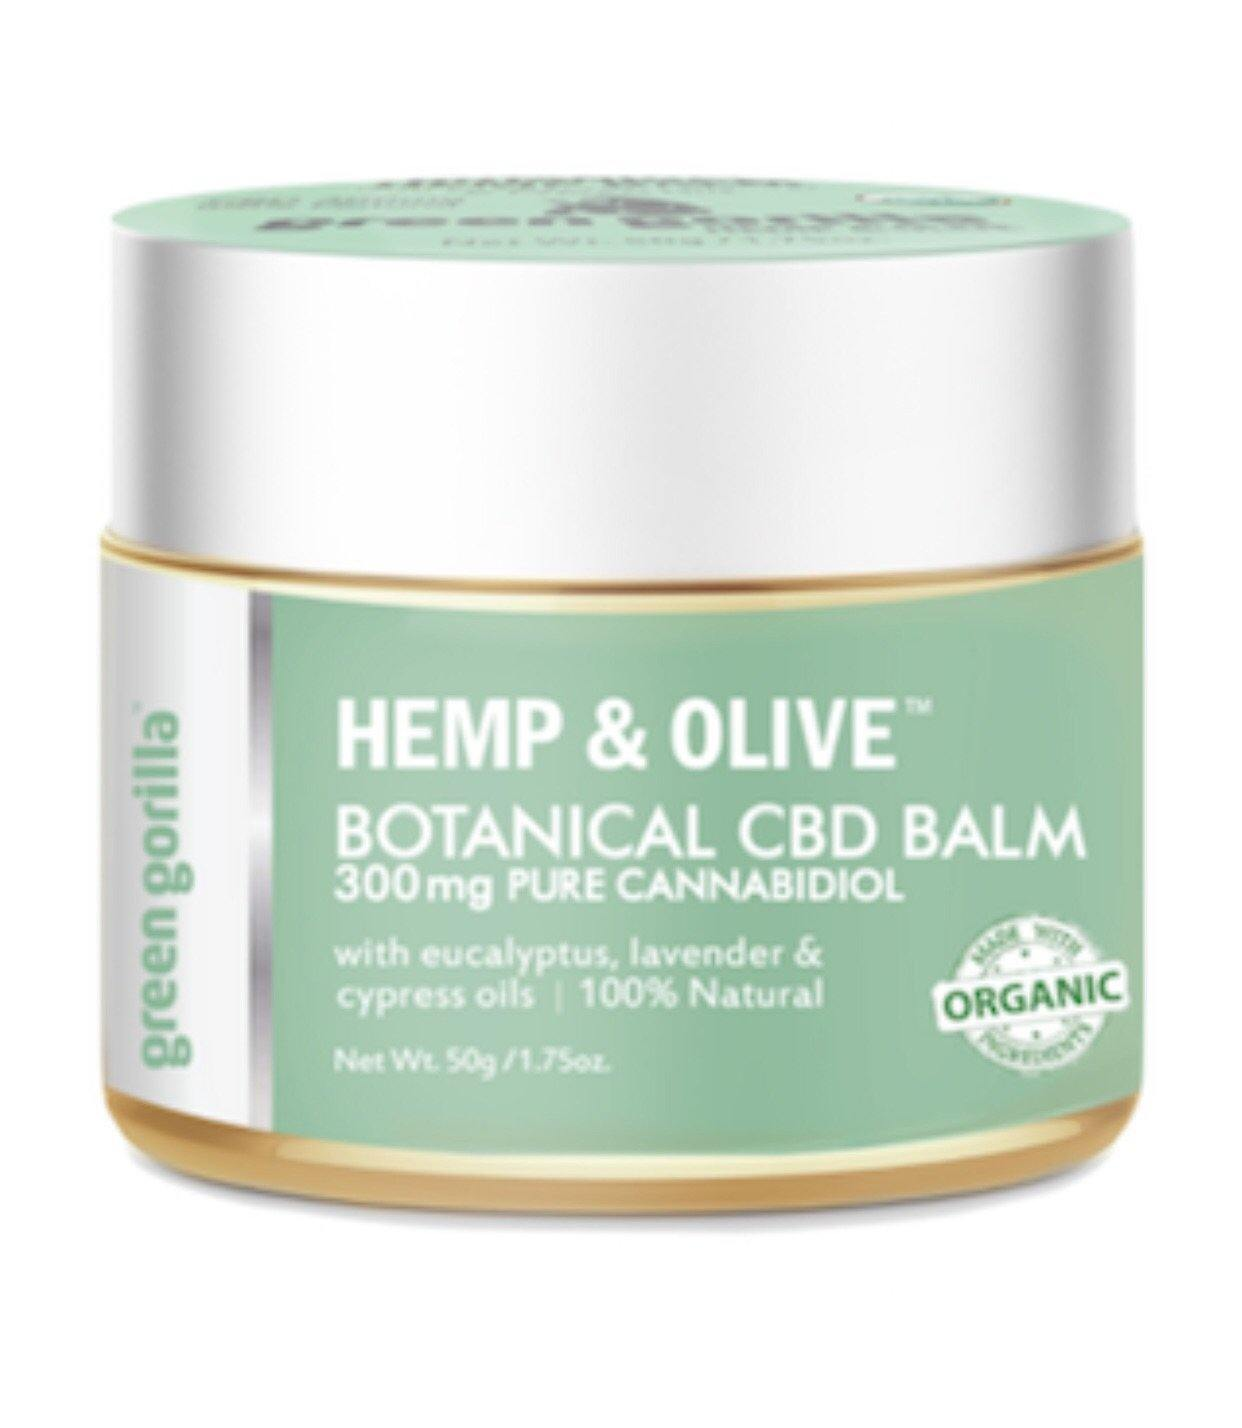 BOTANICAL CBD BALM 300 MG 1.75 OZ